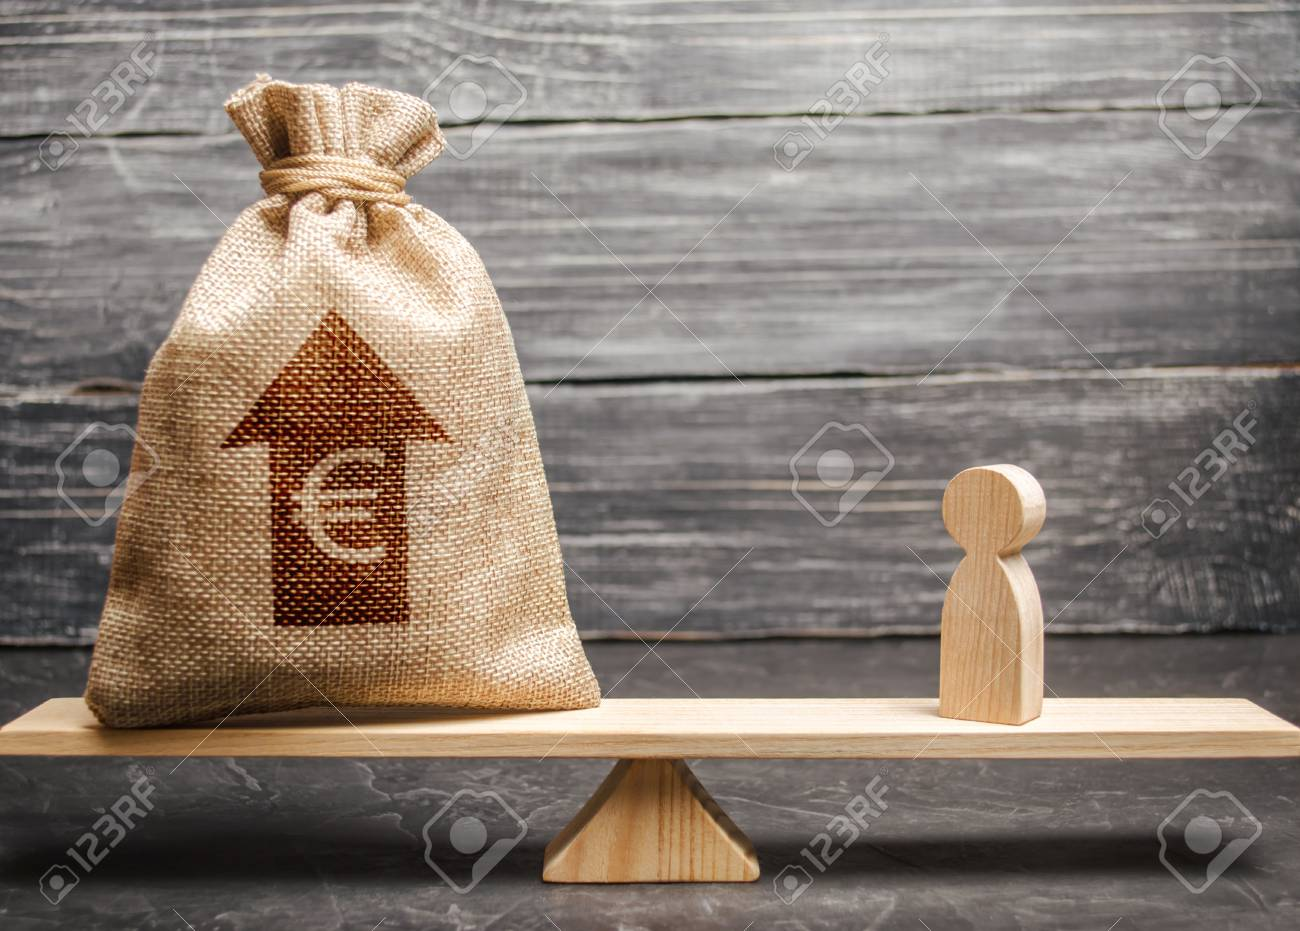 Euro money bag with up arrow and man figurine on scales  The